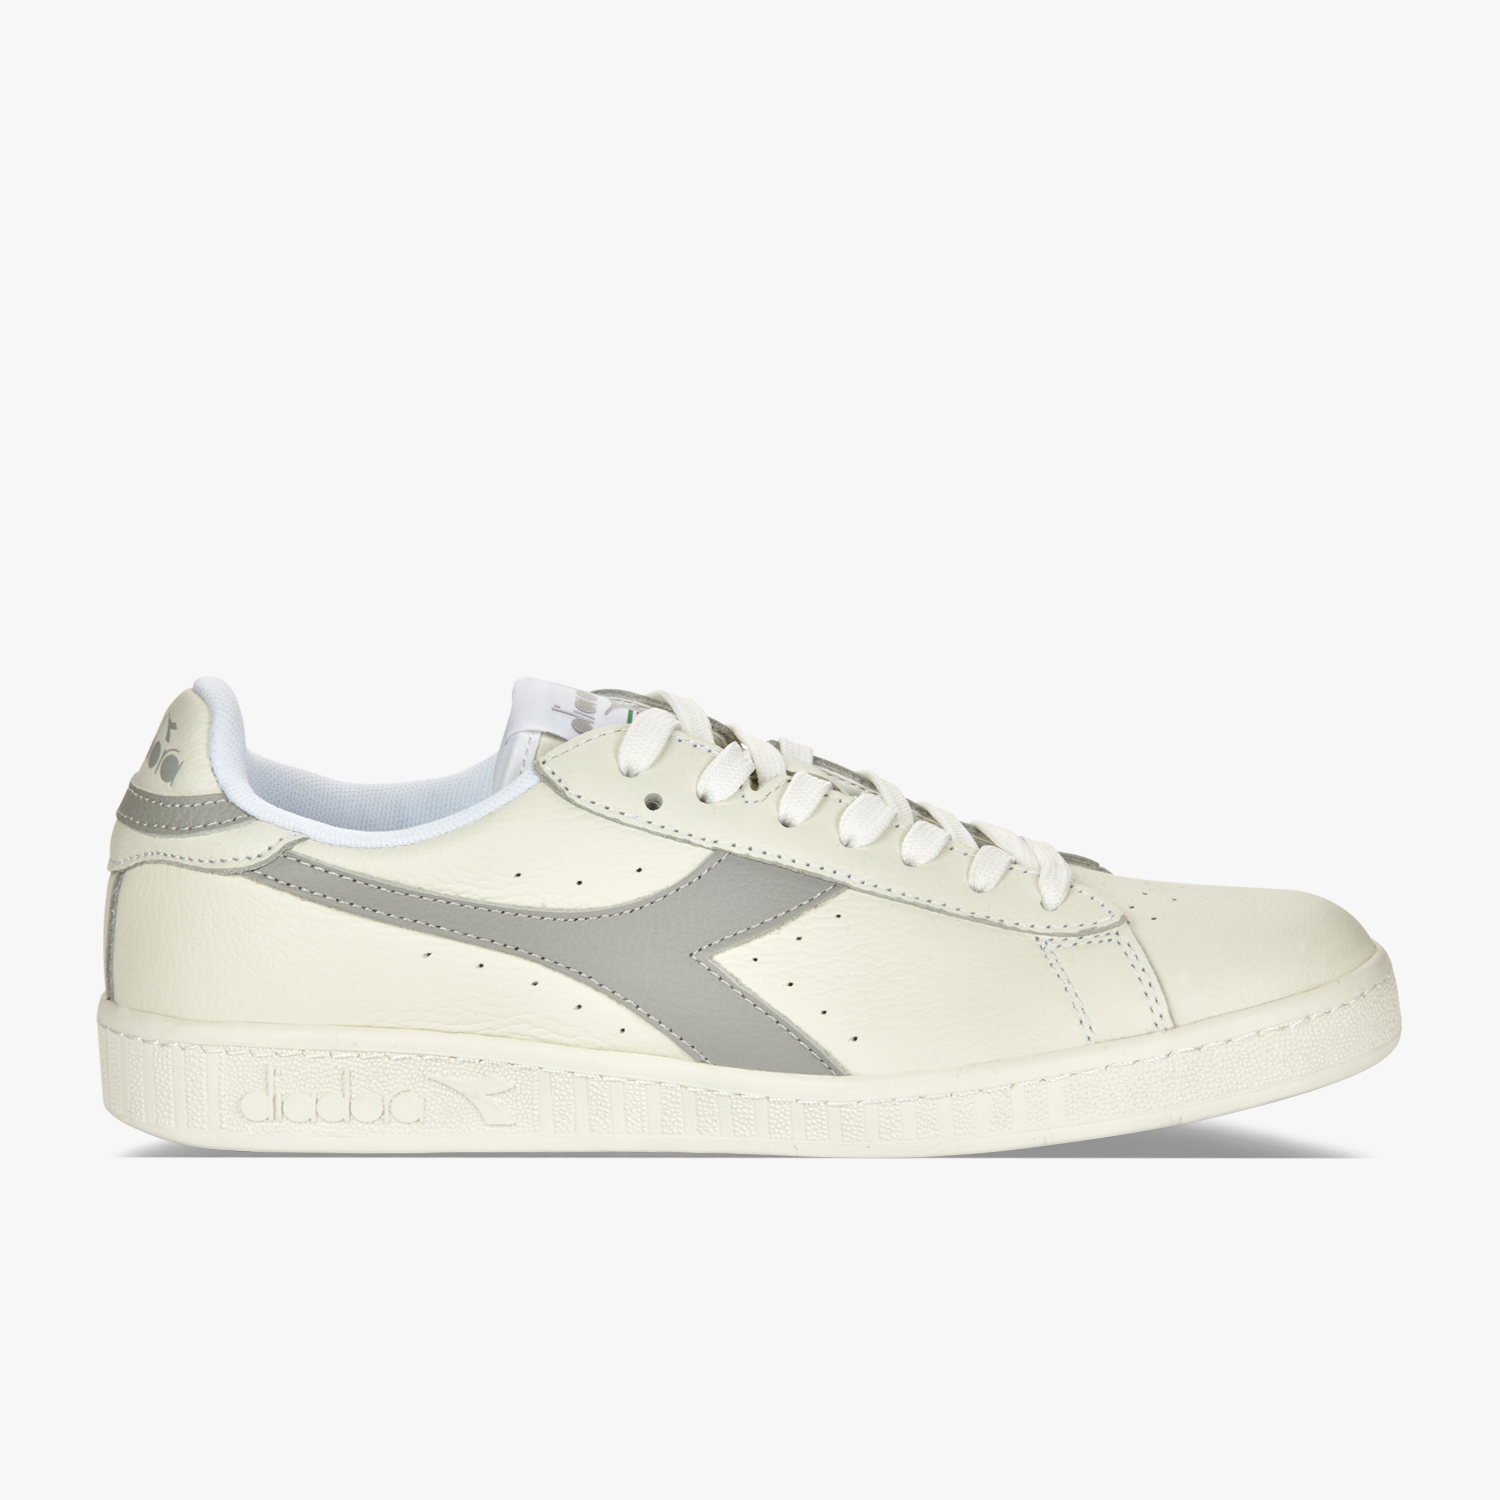 Sneakers for Women On Sale, White, Leather, 2017, 3.5 7.5 Diadora